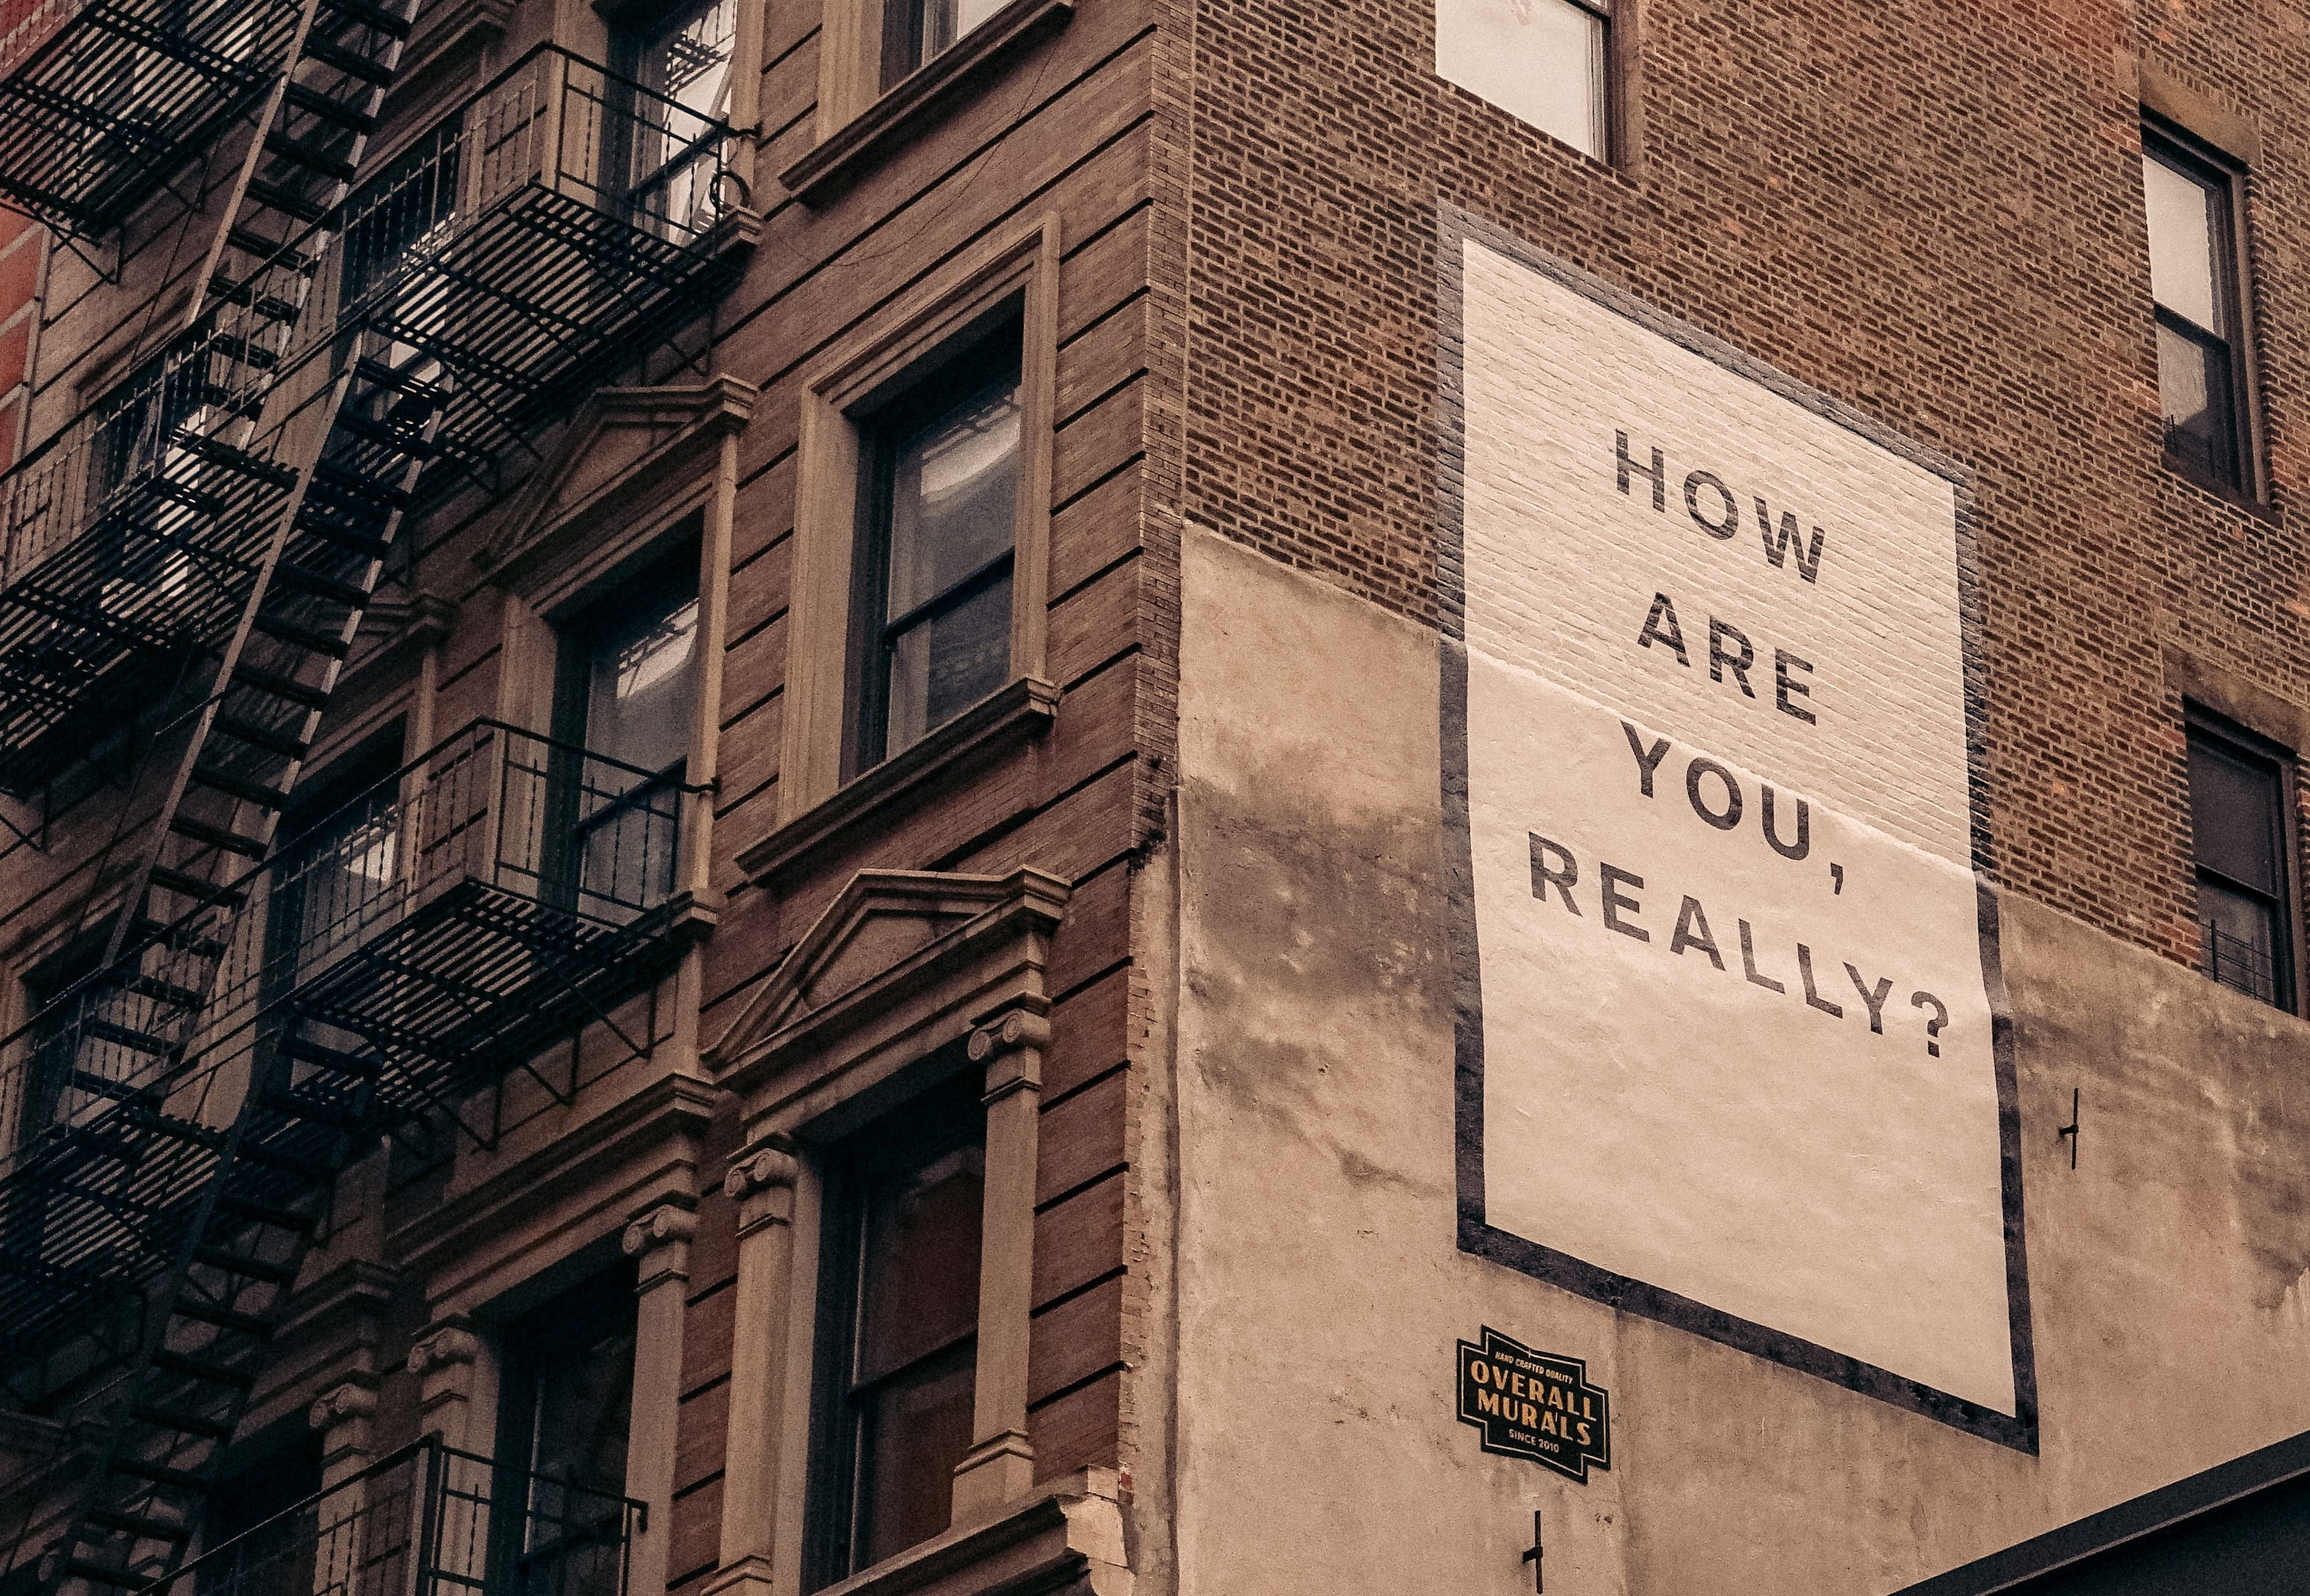 billboard with text saying how are you, really?